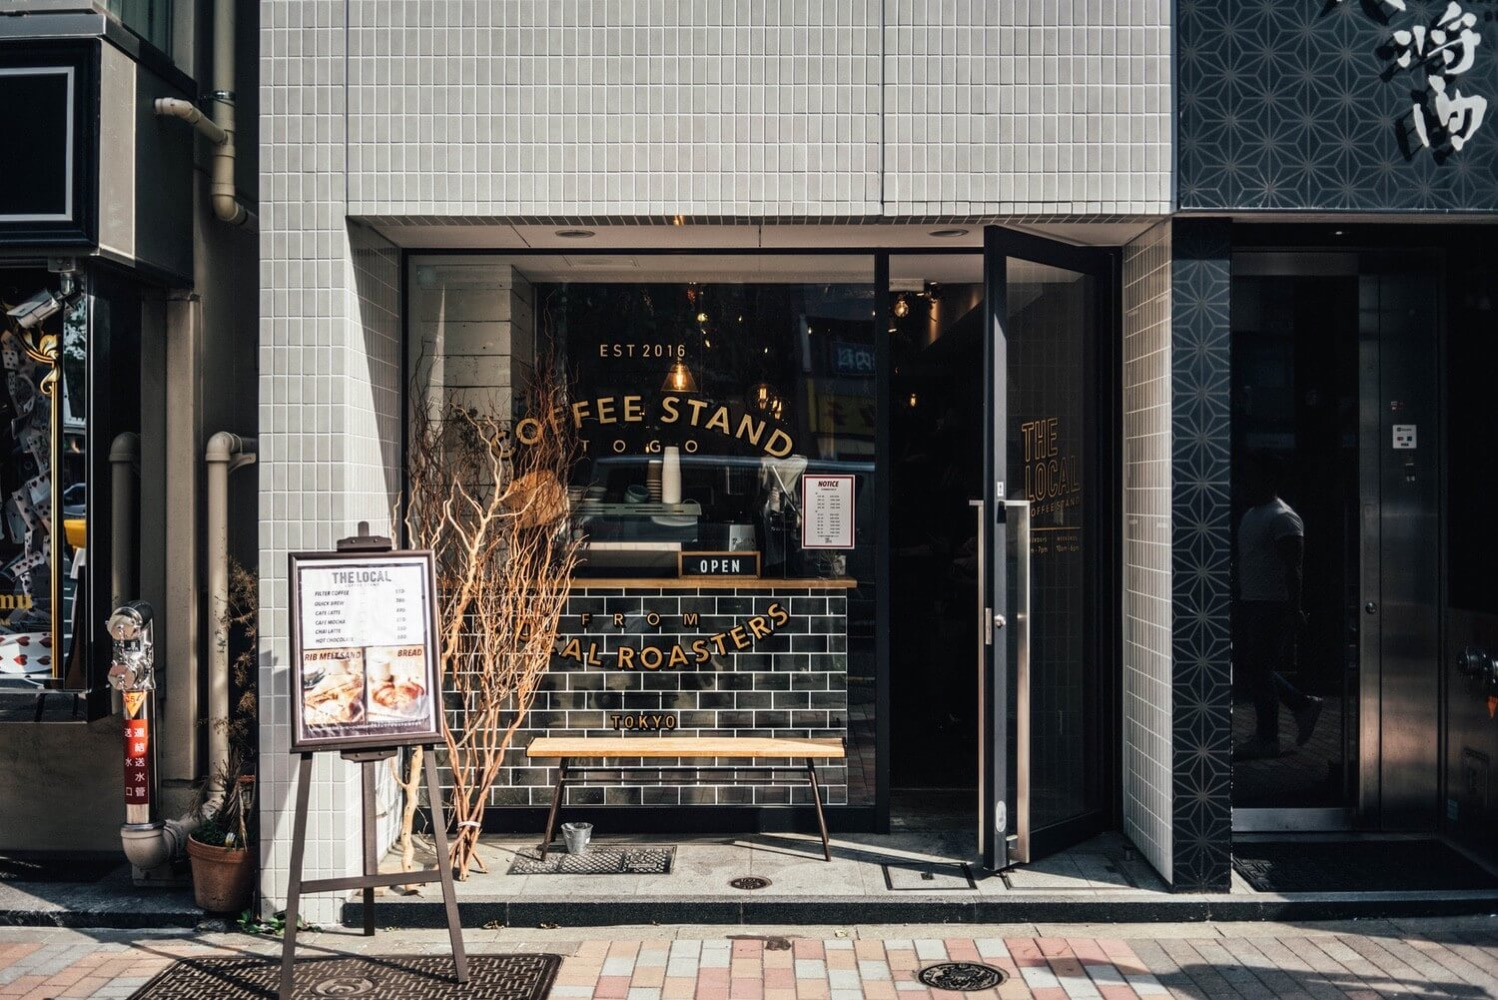 The local coffee stand shibuya 0004